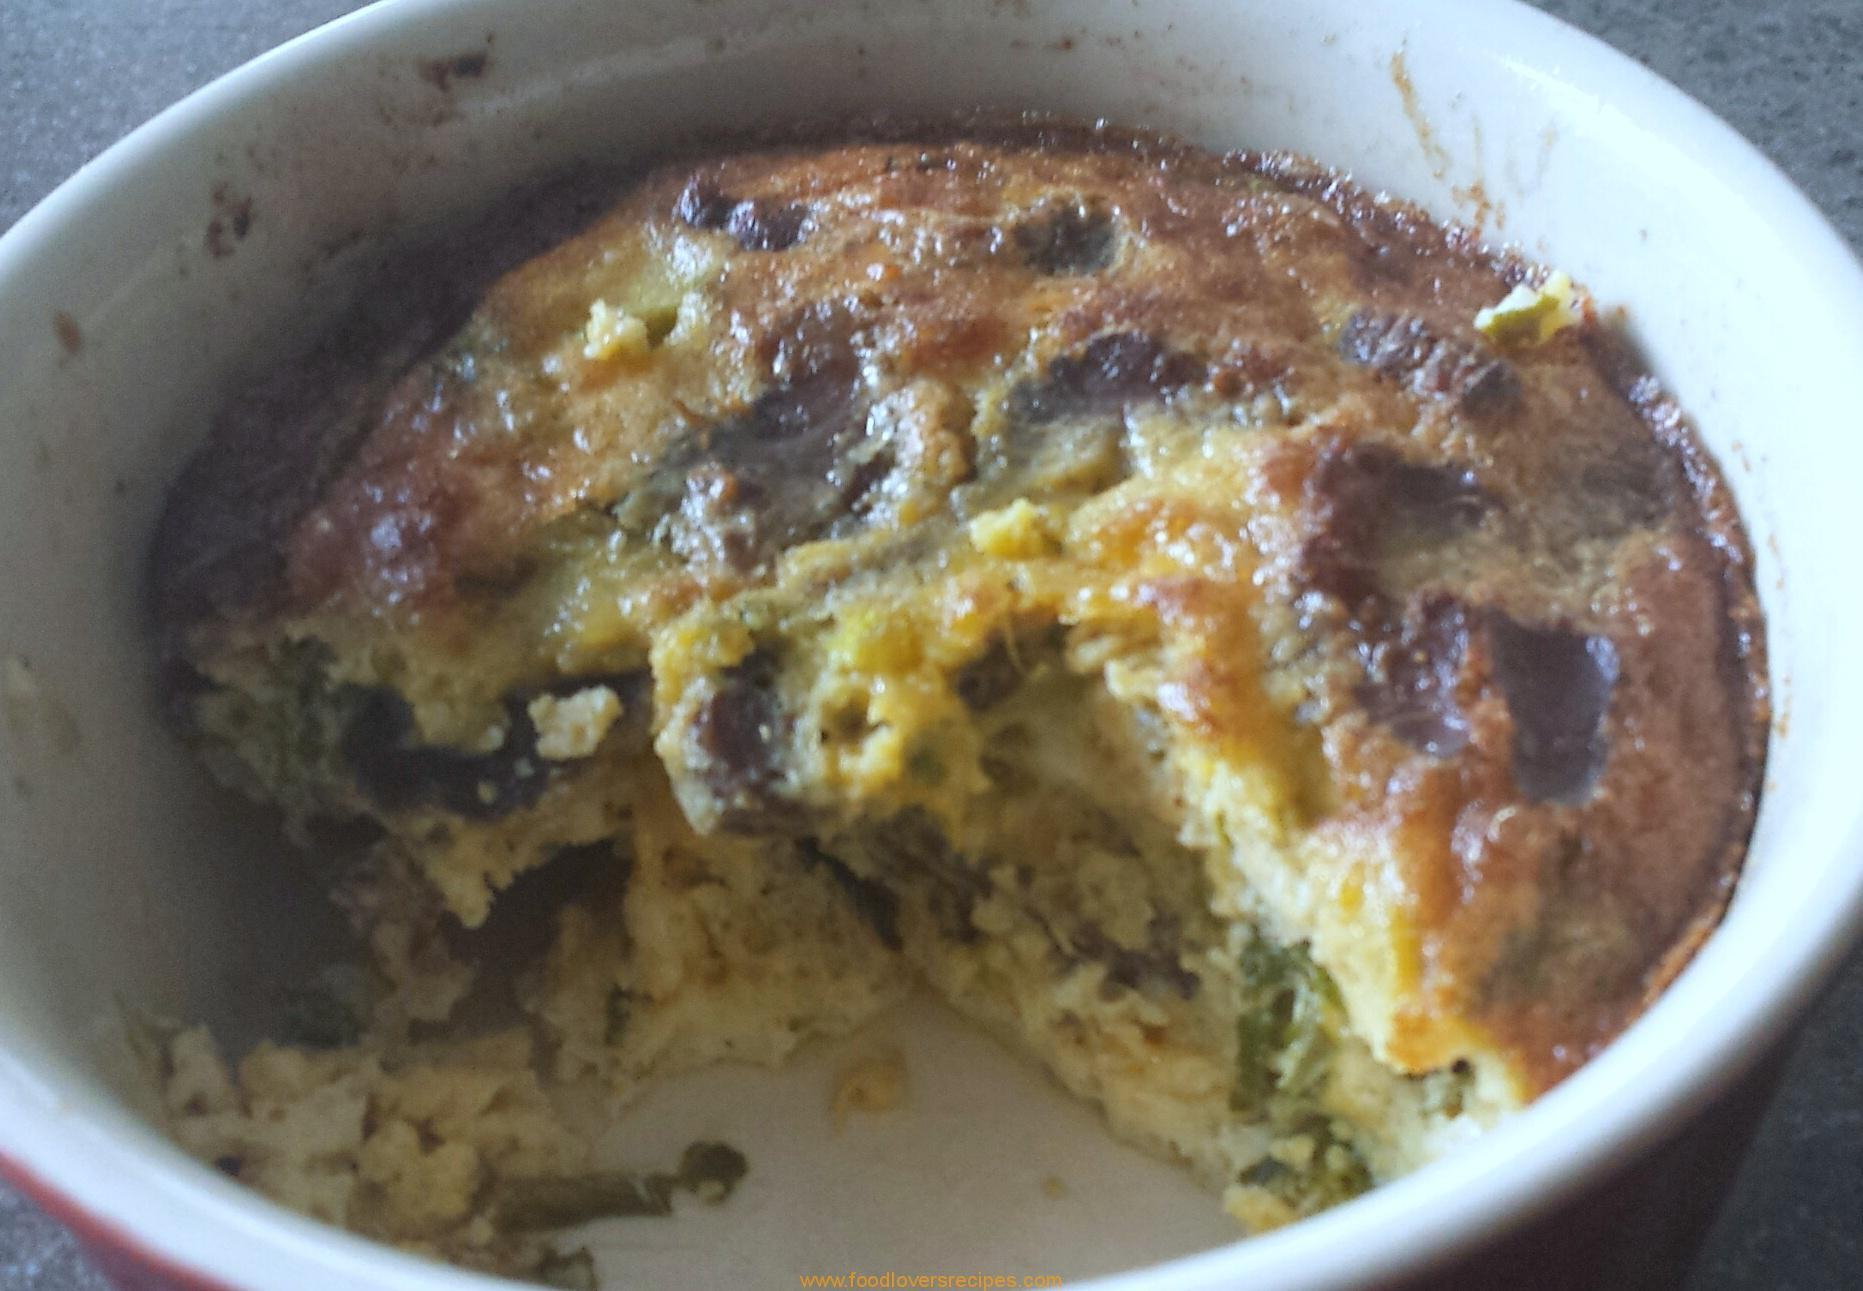 KALE, BILTONG AND EGG BAKE